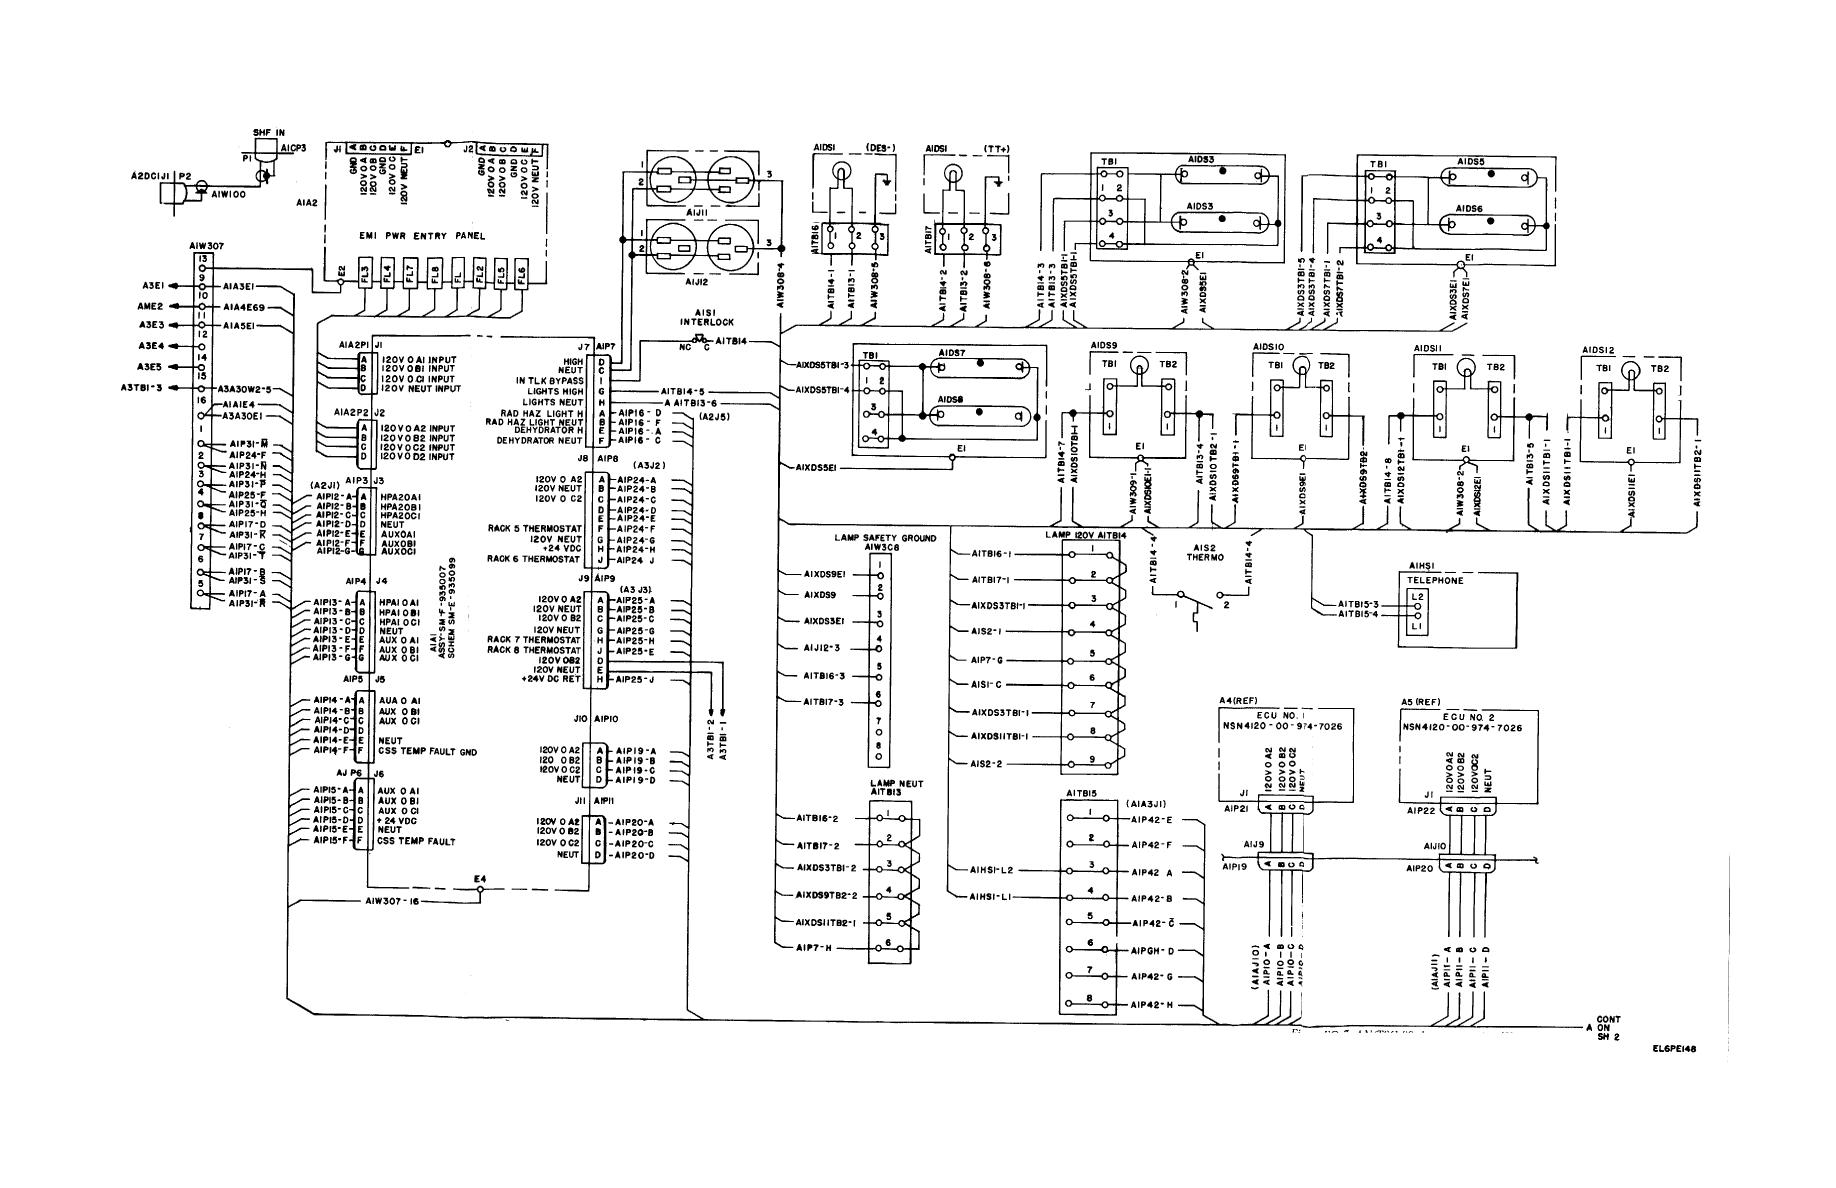 TM 11 5895 846 140386im figure fo 7 an tsc 86, interconnection wiring diagram (sheet 1 of 4) interconnection wiring diagram at webbmarketing.co